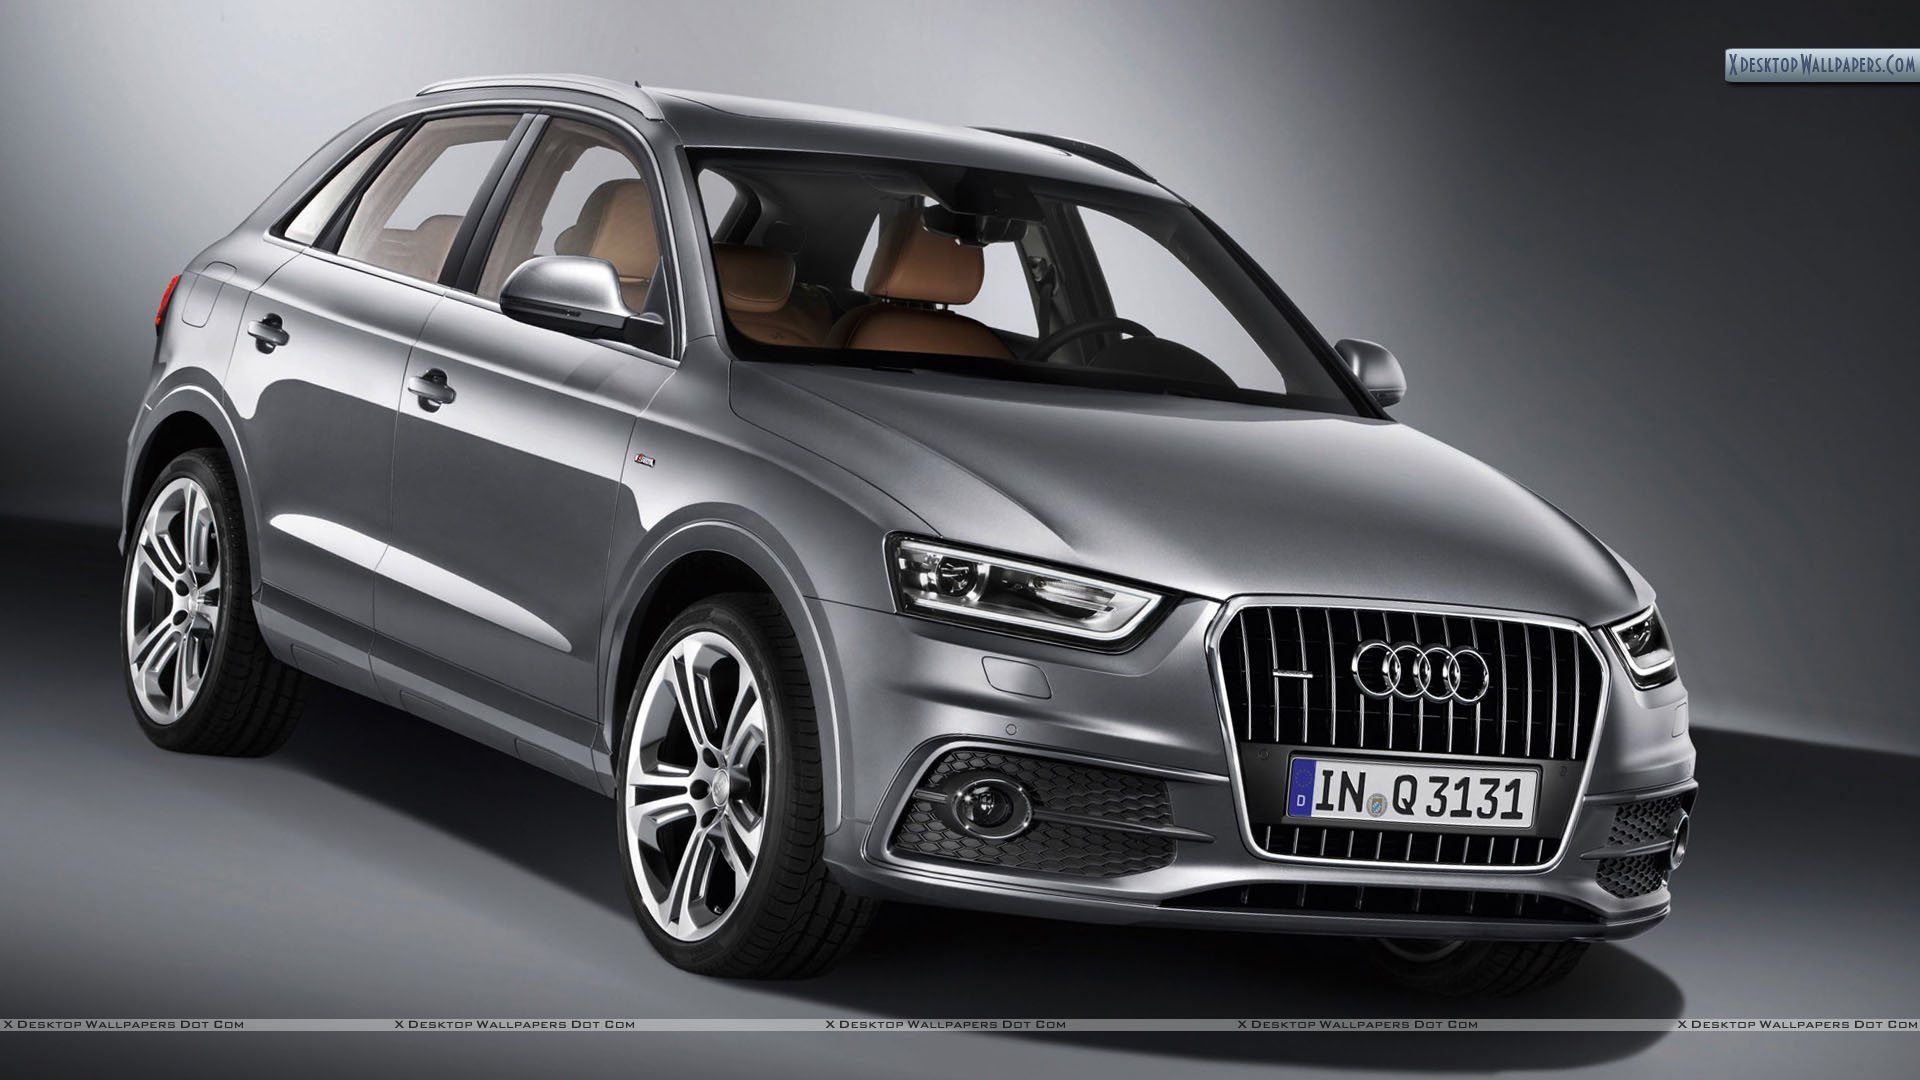 2012 audi q3 quattro s line front pose in metalic grey. Black Bedroom Furniture Sets. Home Design Ideas